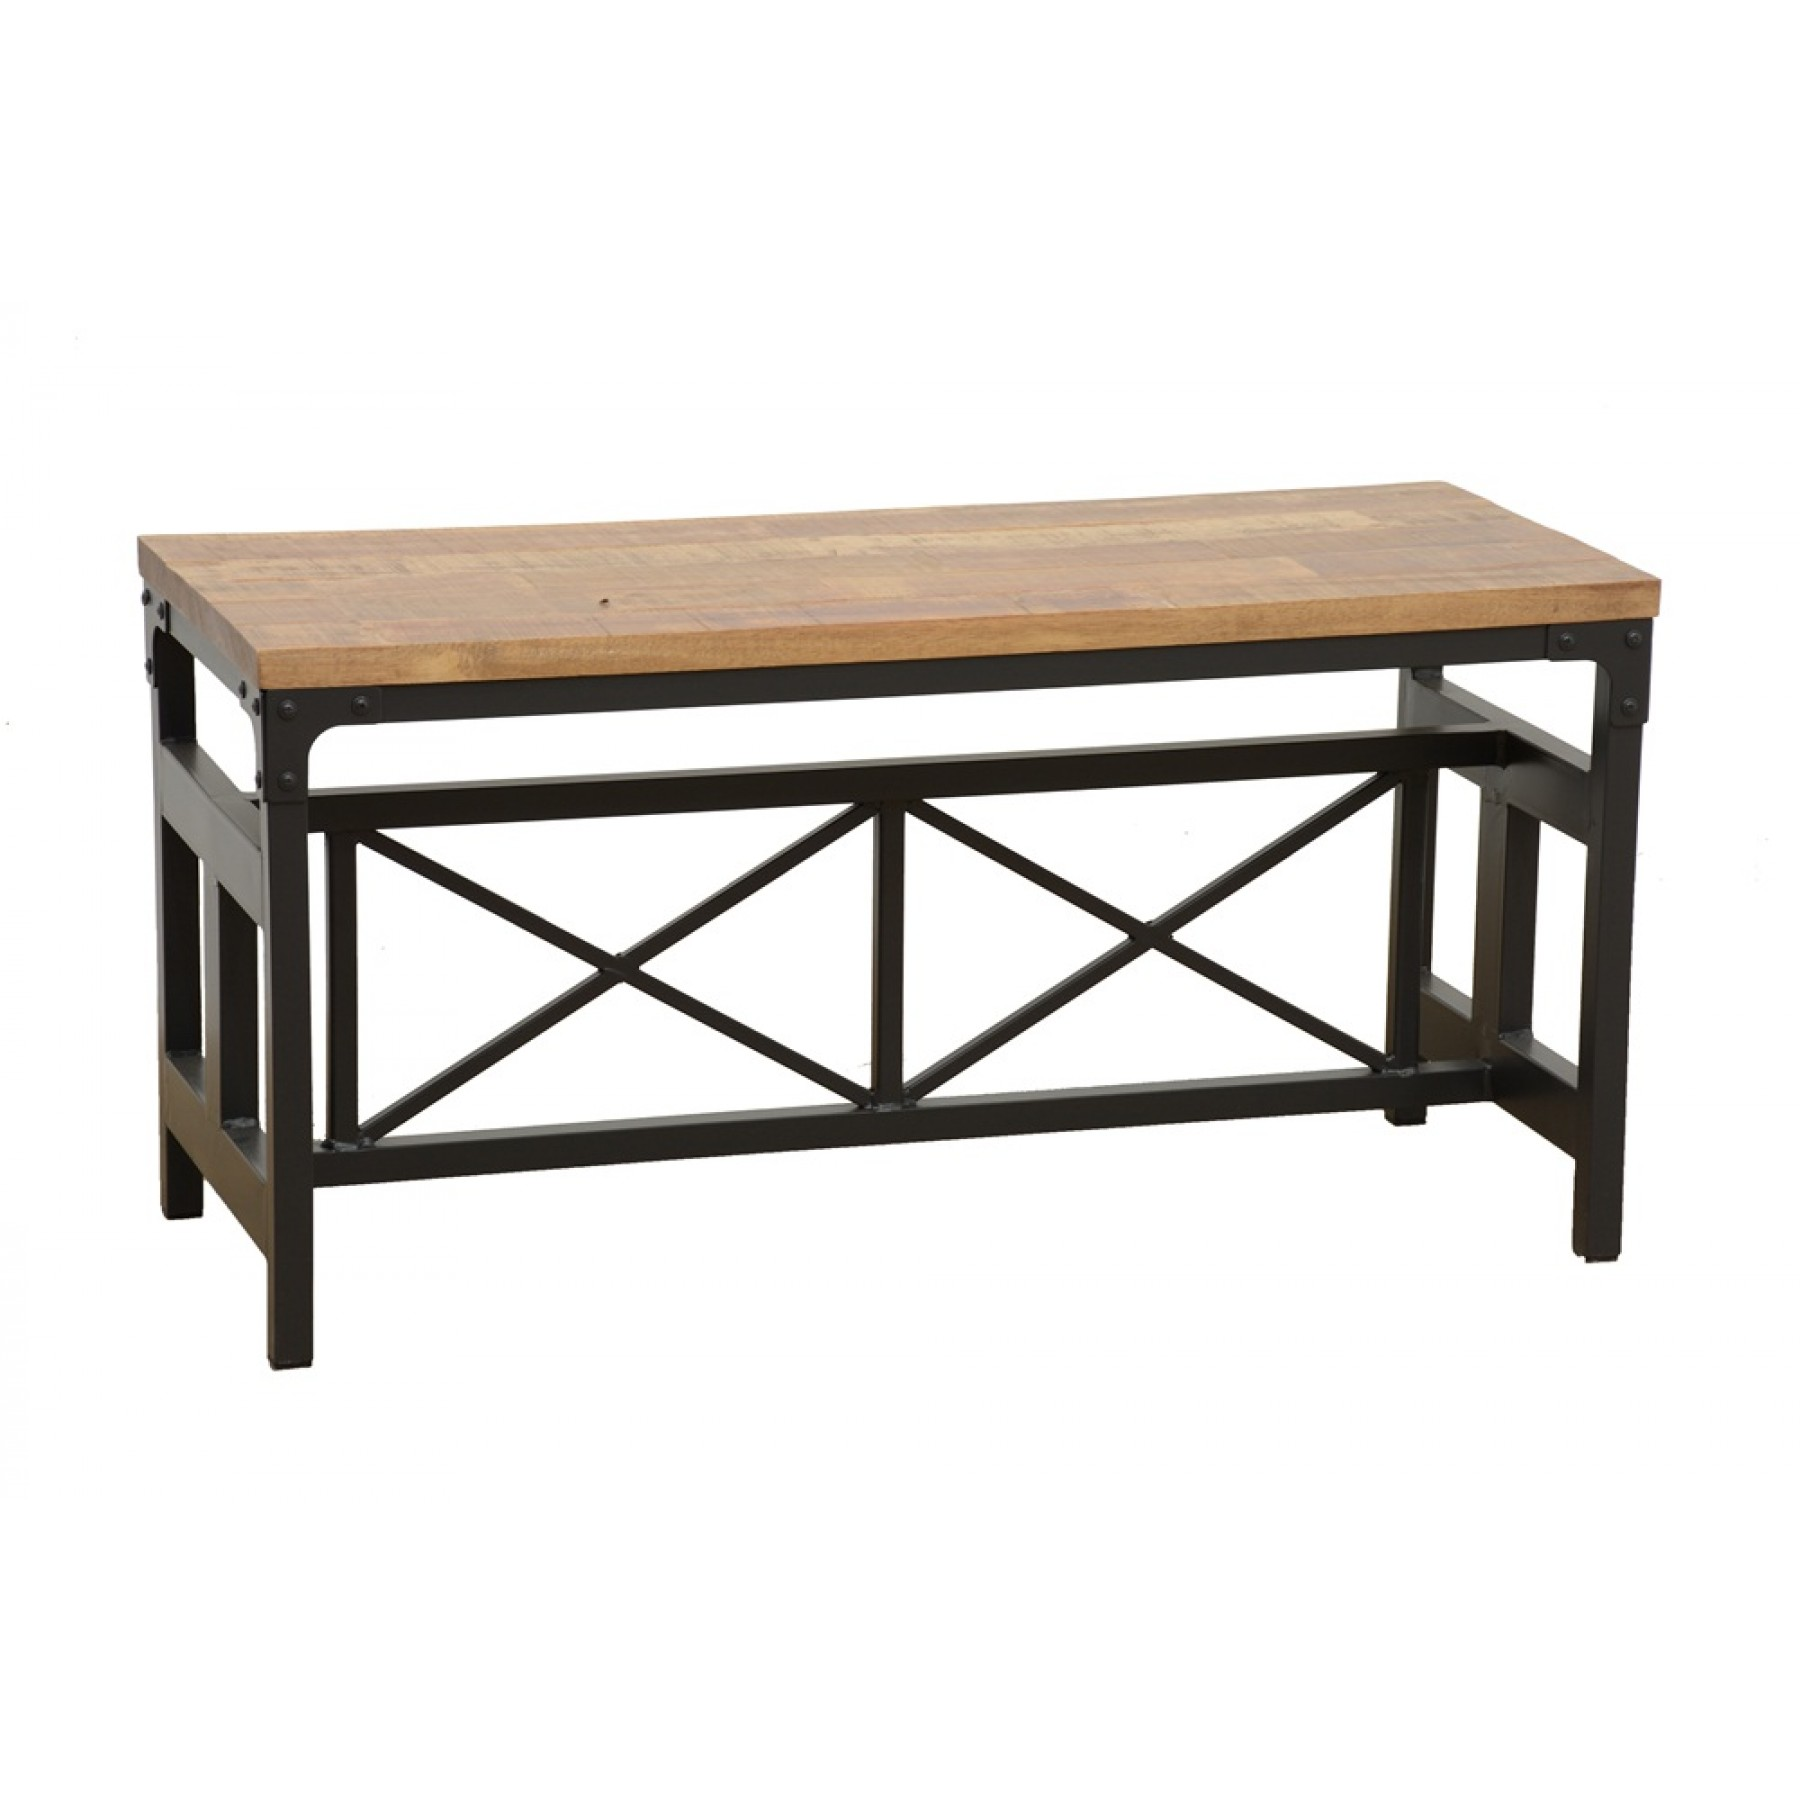 Table Fer Forgé Bois Banc Large Bois Fer Forgé Finition Naturelle Vieillie